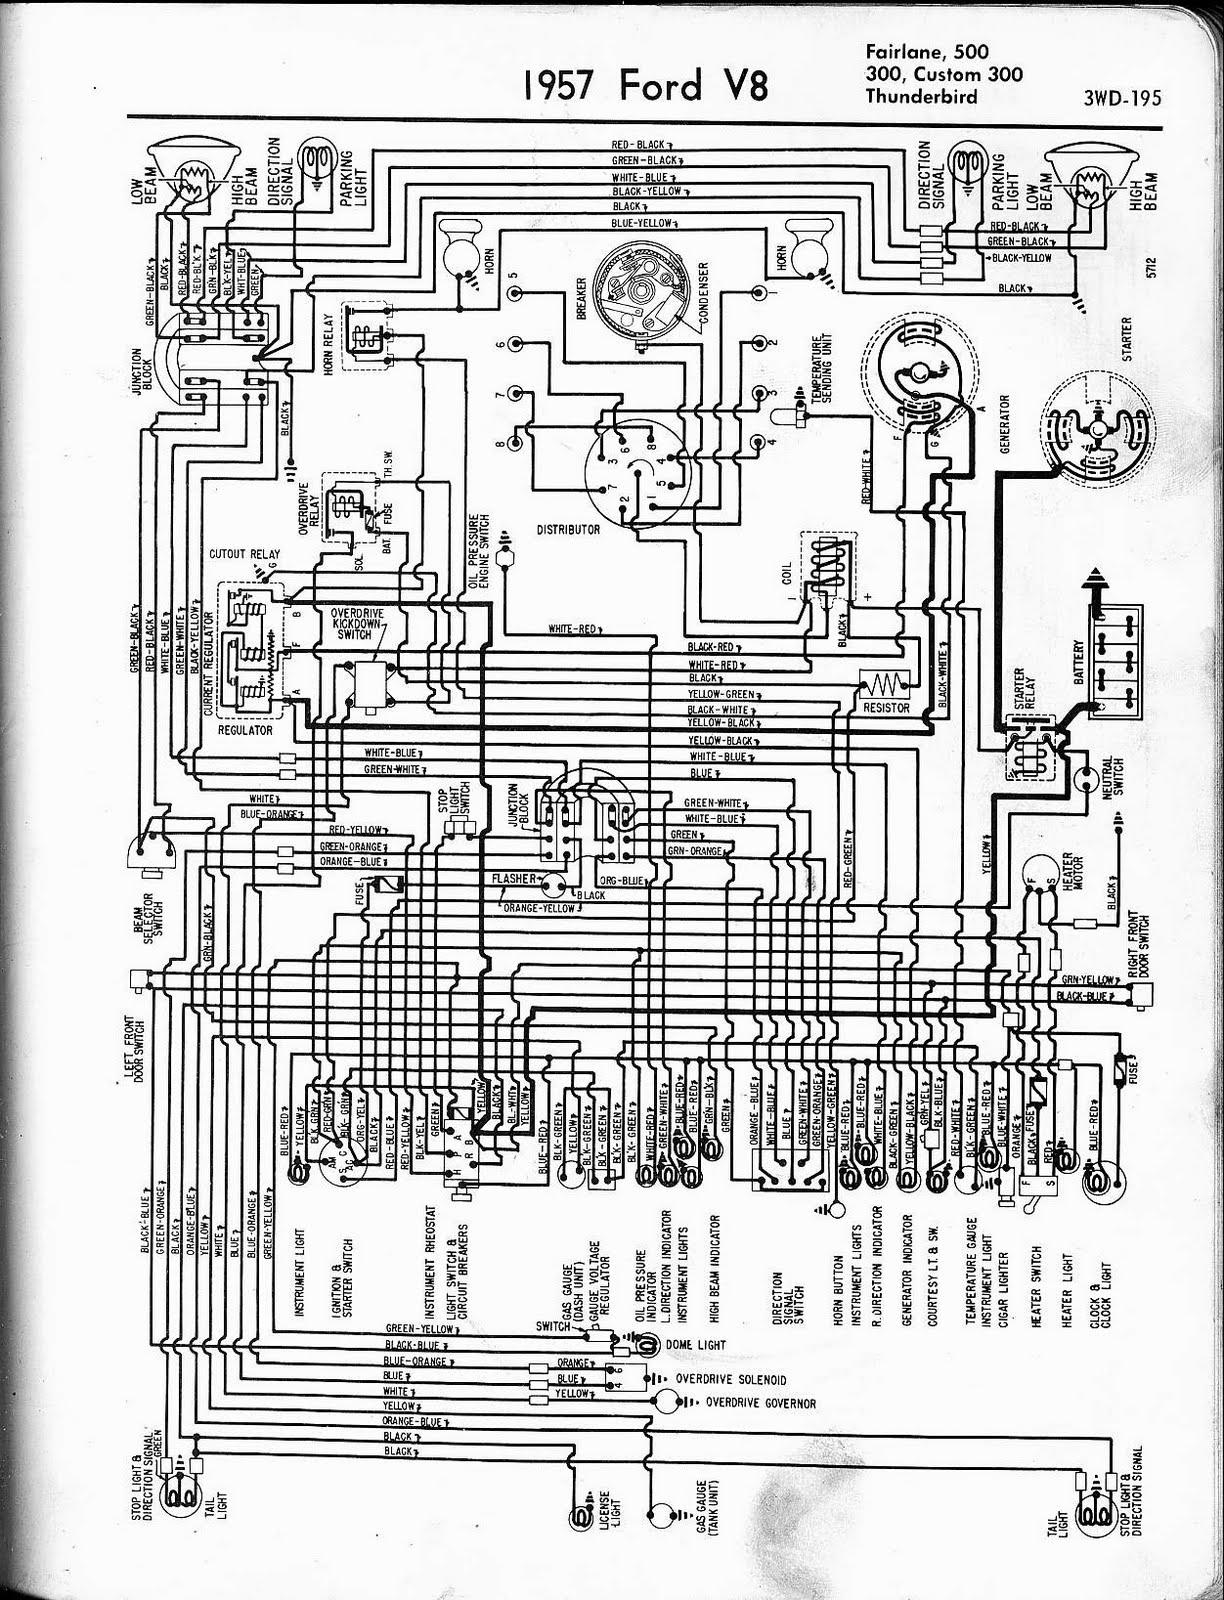 free auto wiring diagram  1957 ford v8 fairlane  custom300